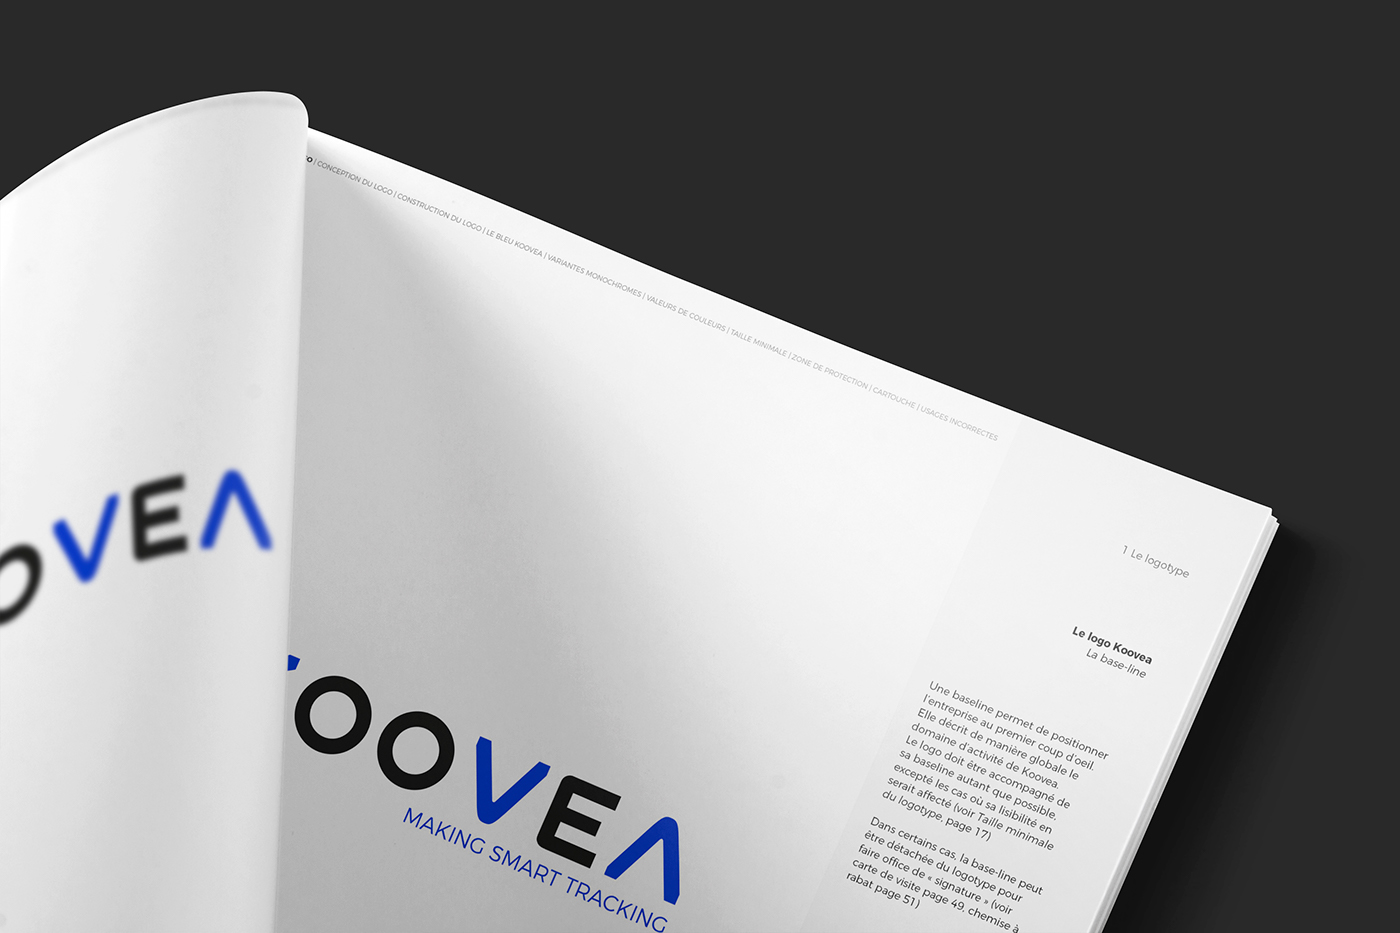 koovea  u2014 brand identity on behance